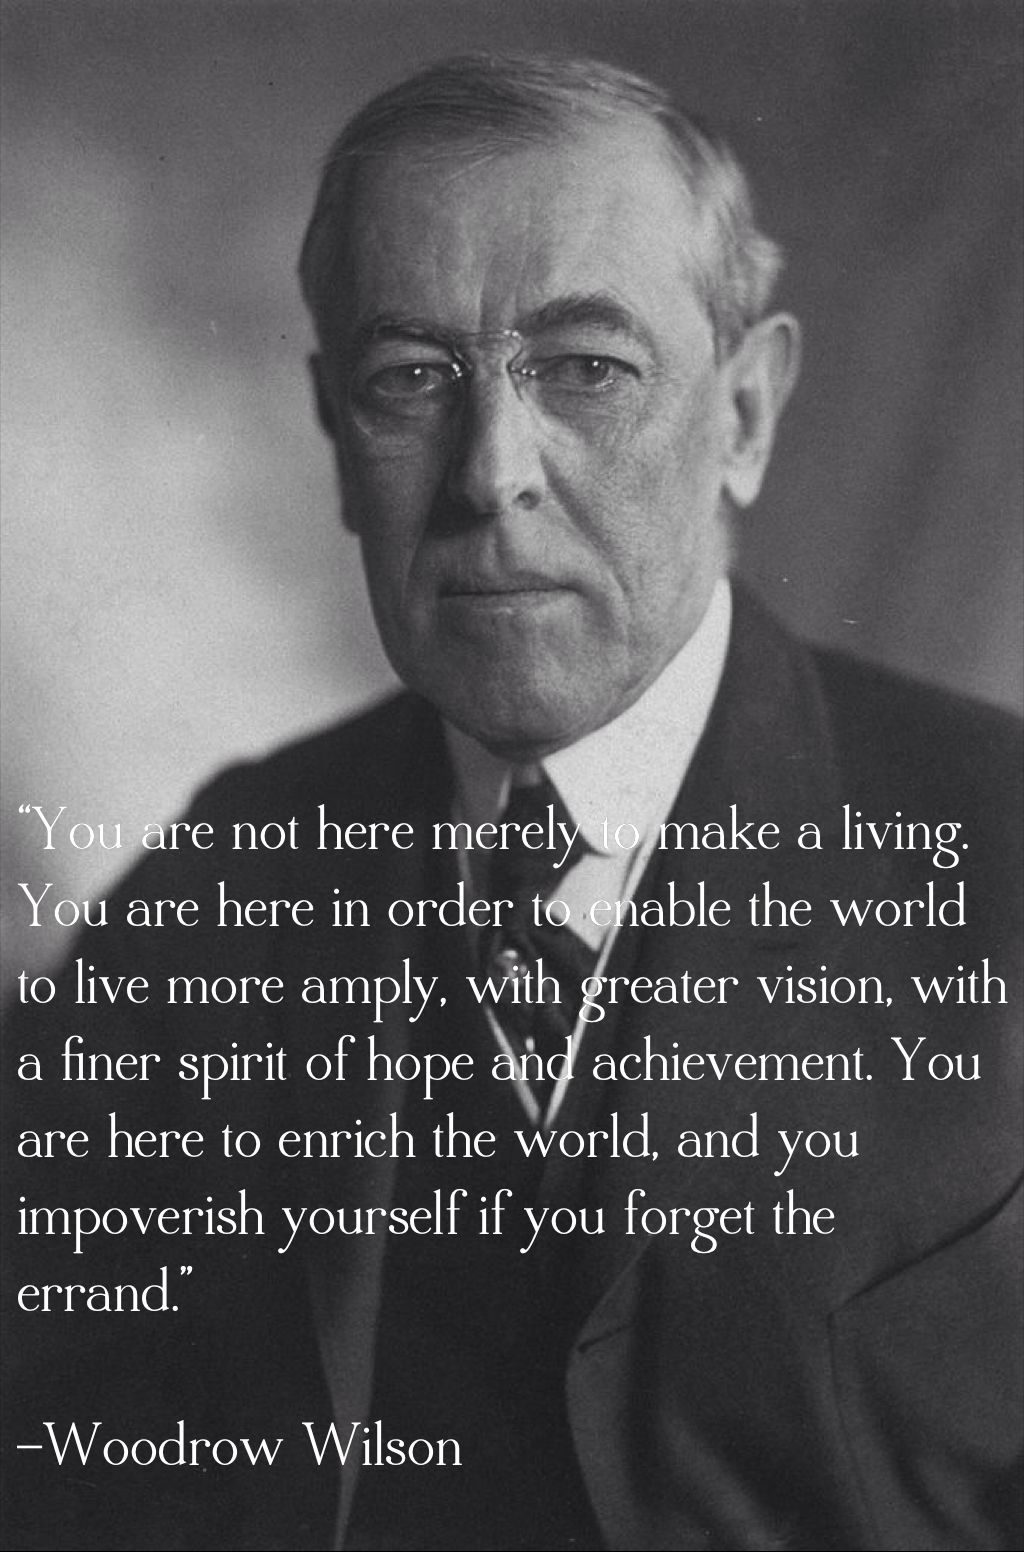 Woodrow Wilson Famous Quotes: A Woodrow Wilson Quote On Life's Purpose.